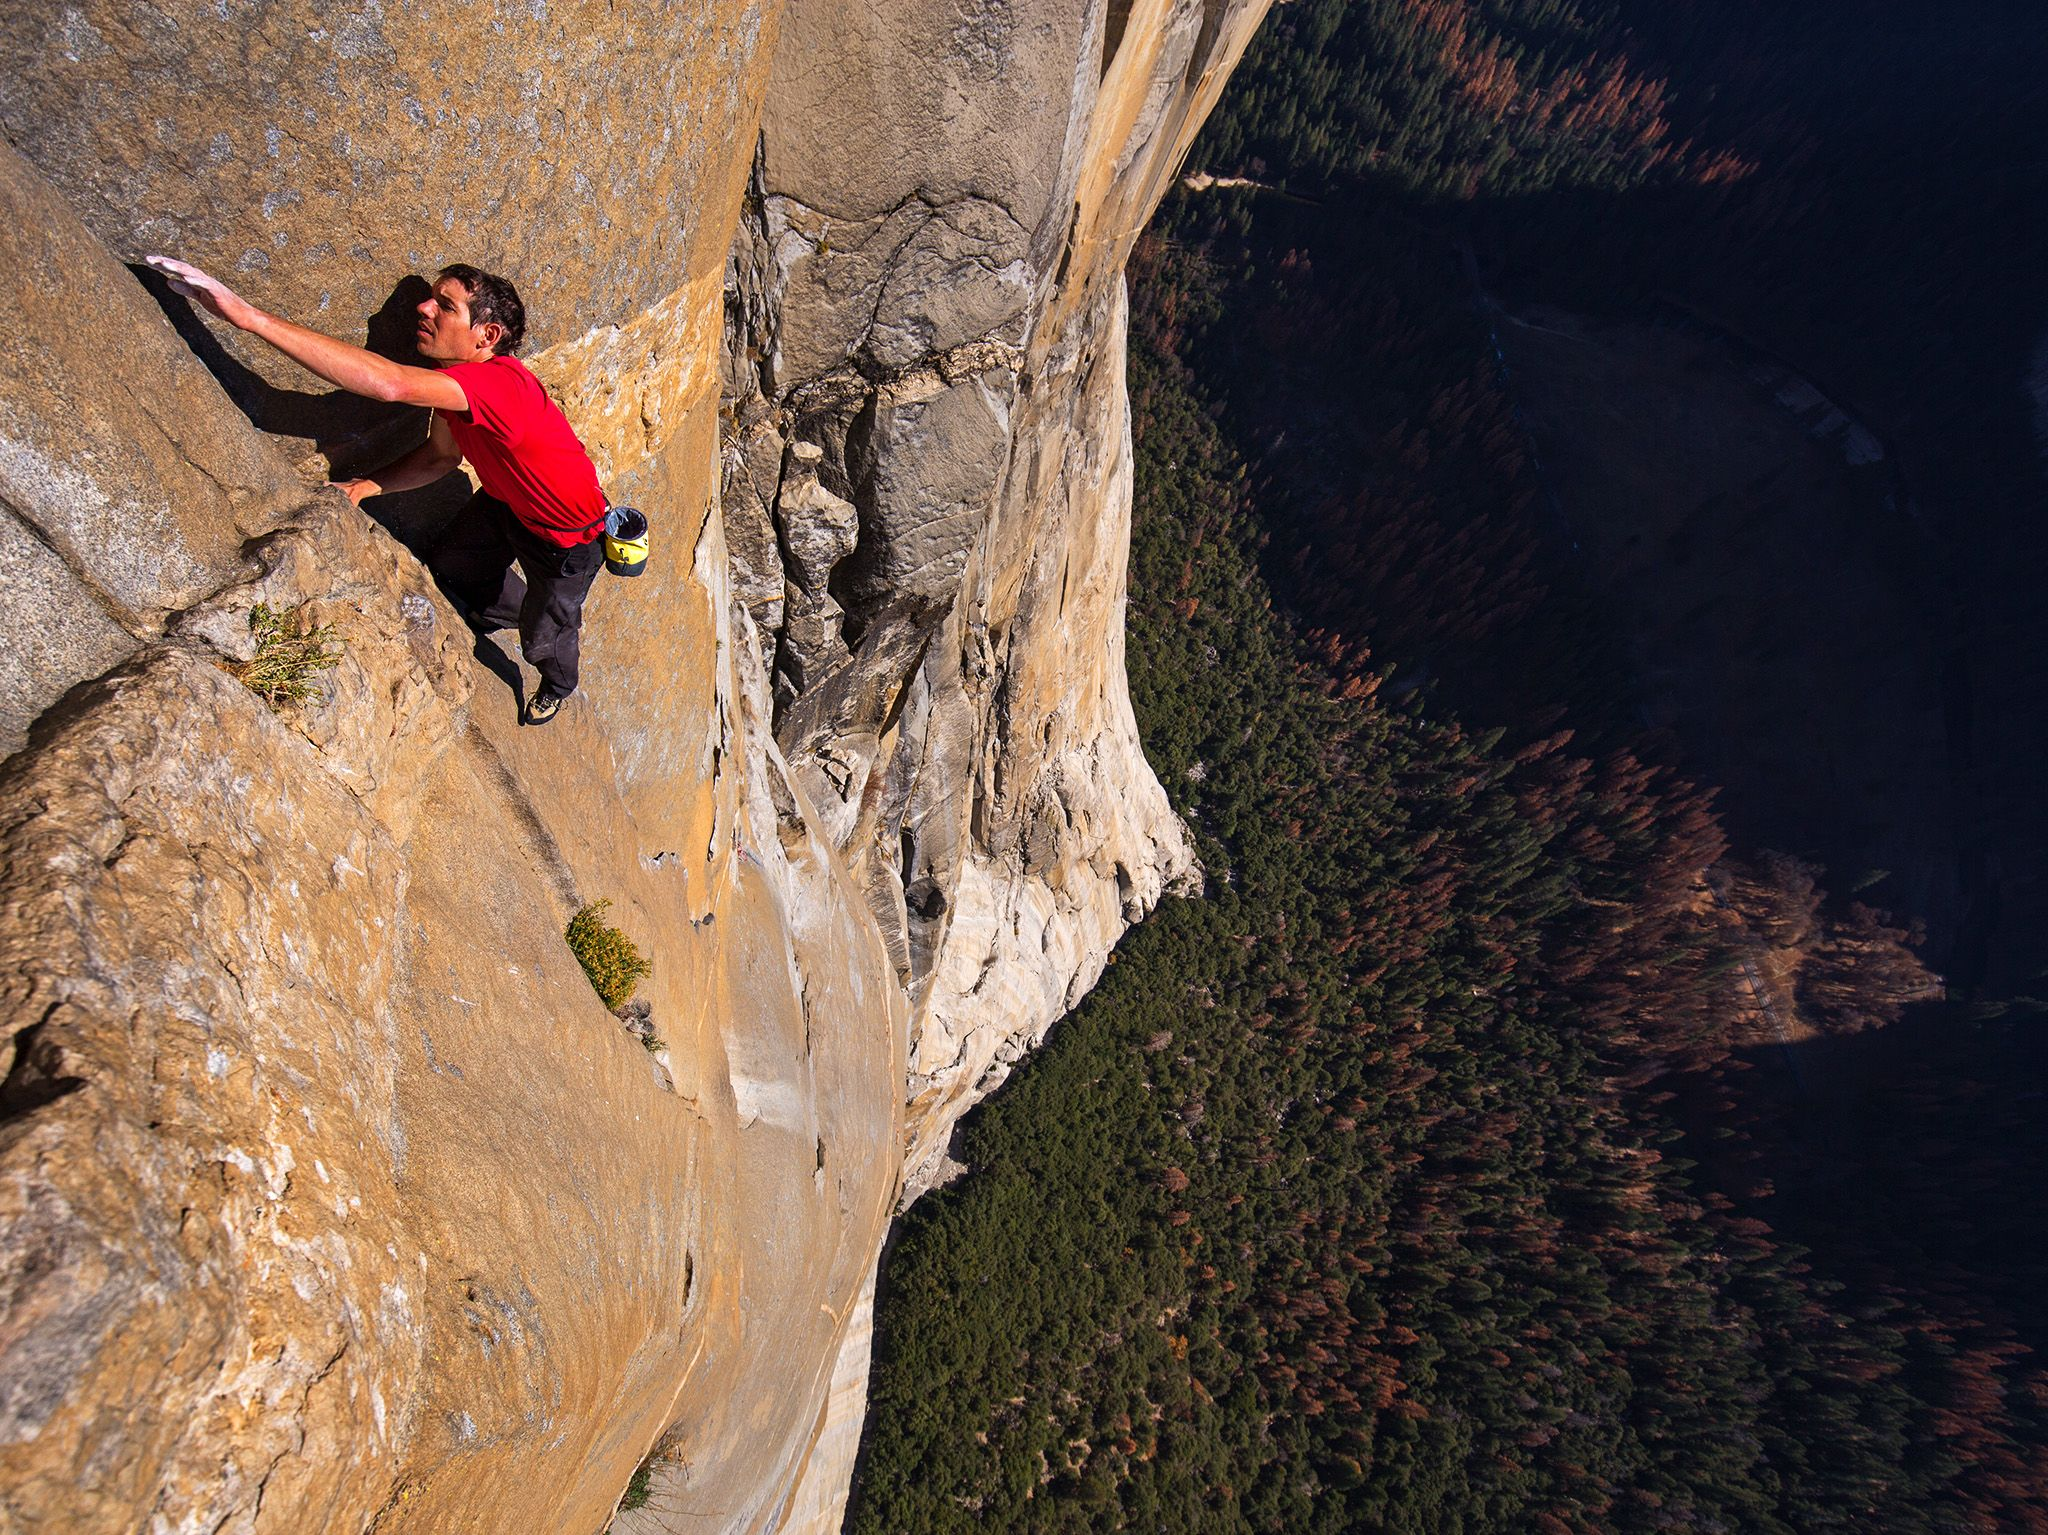 Alex Honnold free solo climbing on El Capitan's Freerider in Yosemite National Park.  This image... [Photo of the day - March 2019]